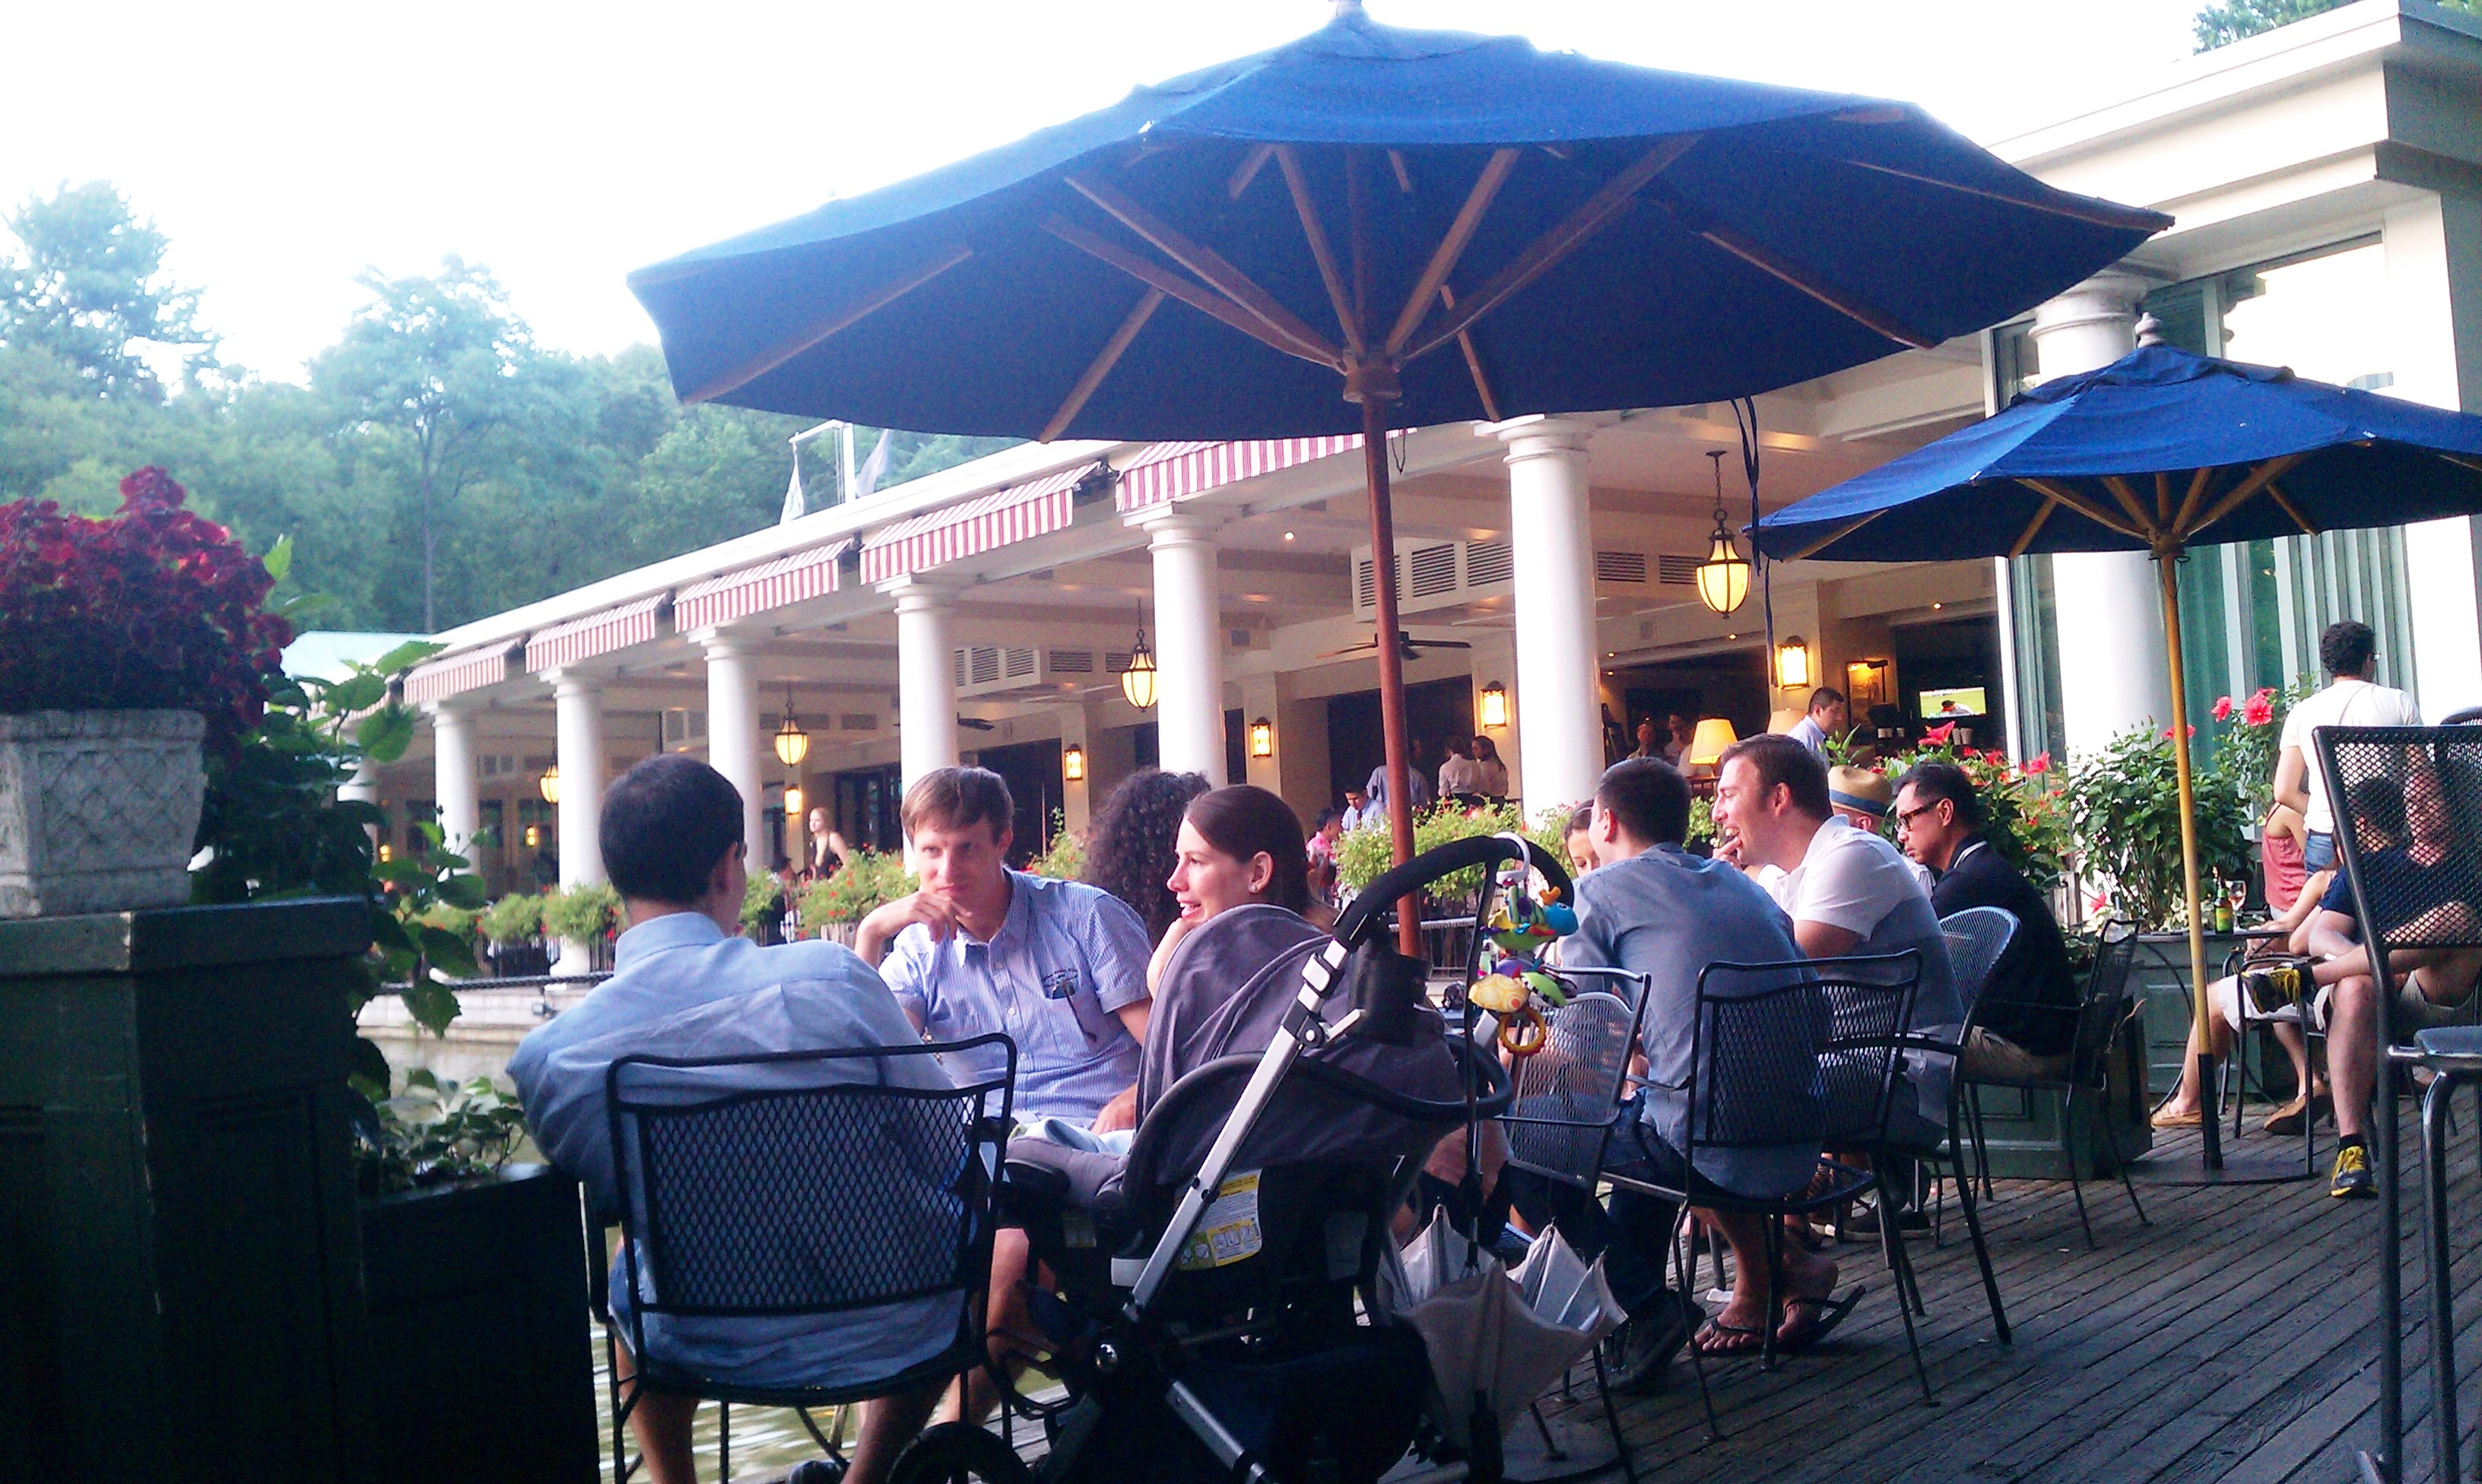 People at The LOEB Boathouse